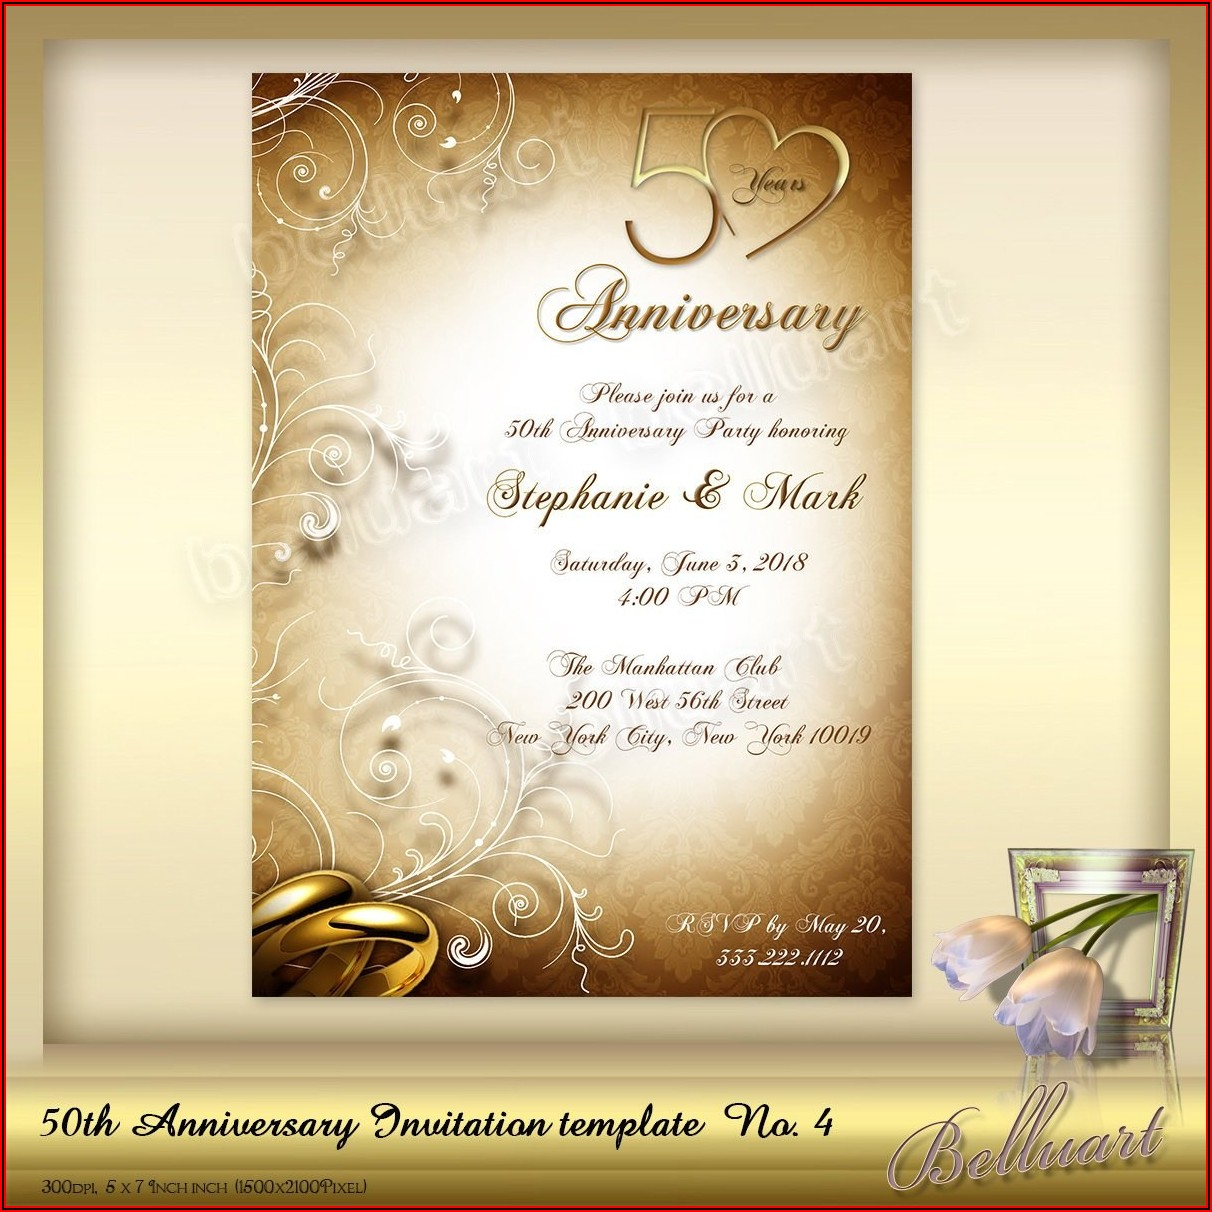 40th Anniversary Invitations Templates Free